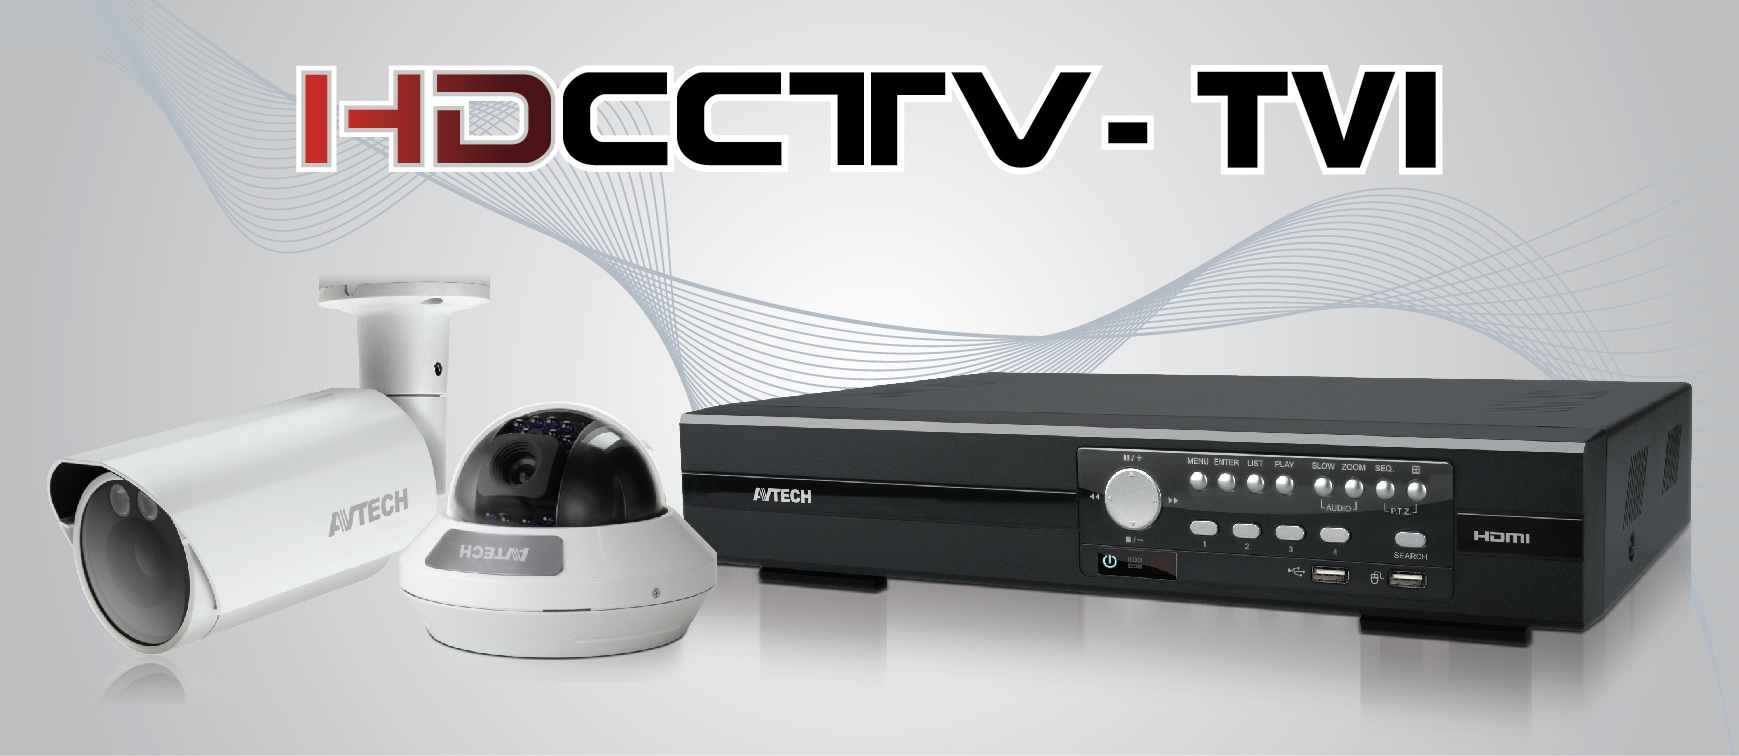 he-thong-camera-hd-cctv-tvi-avtech.jpg